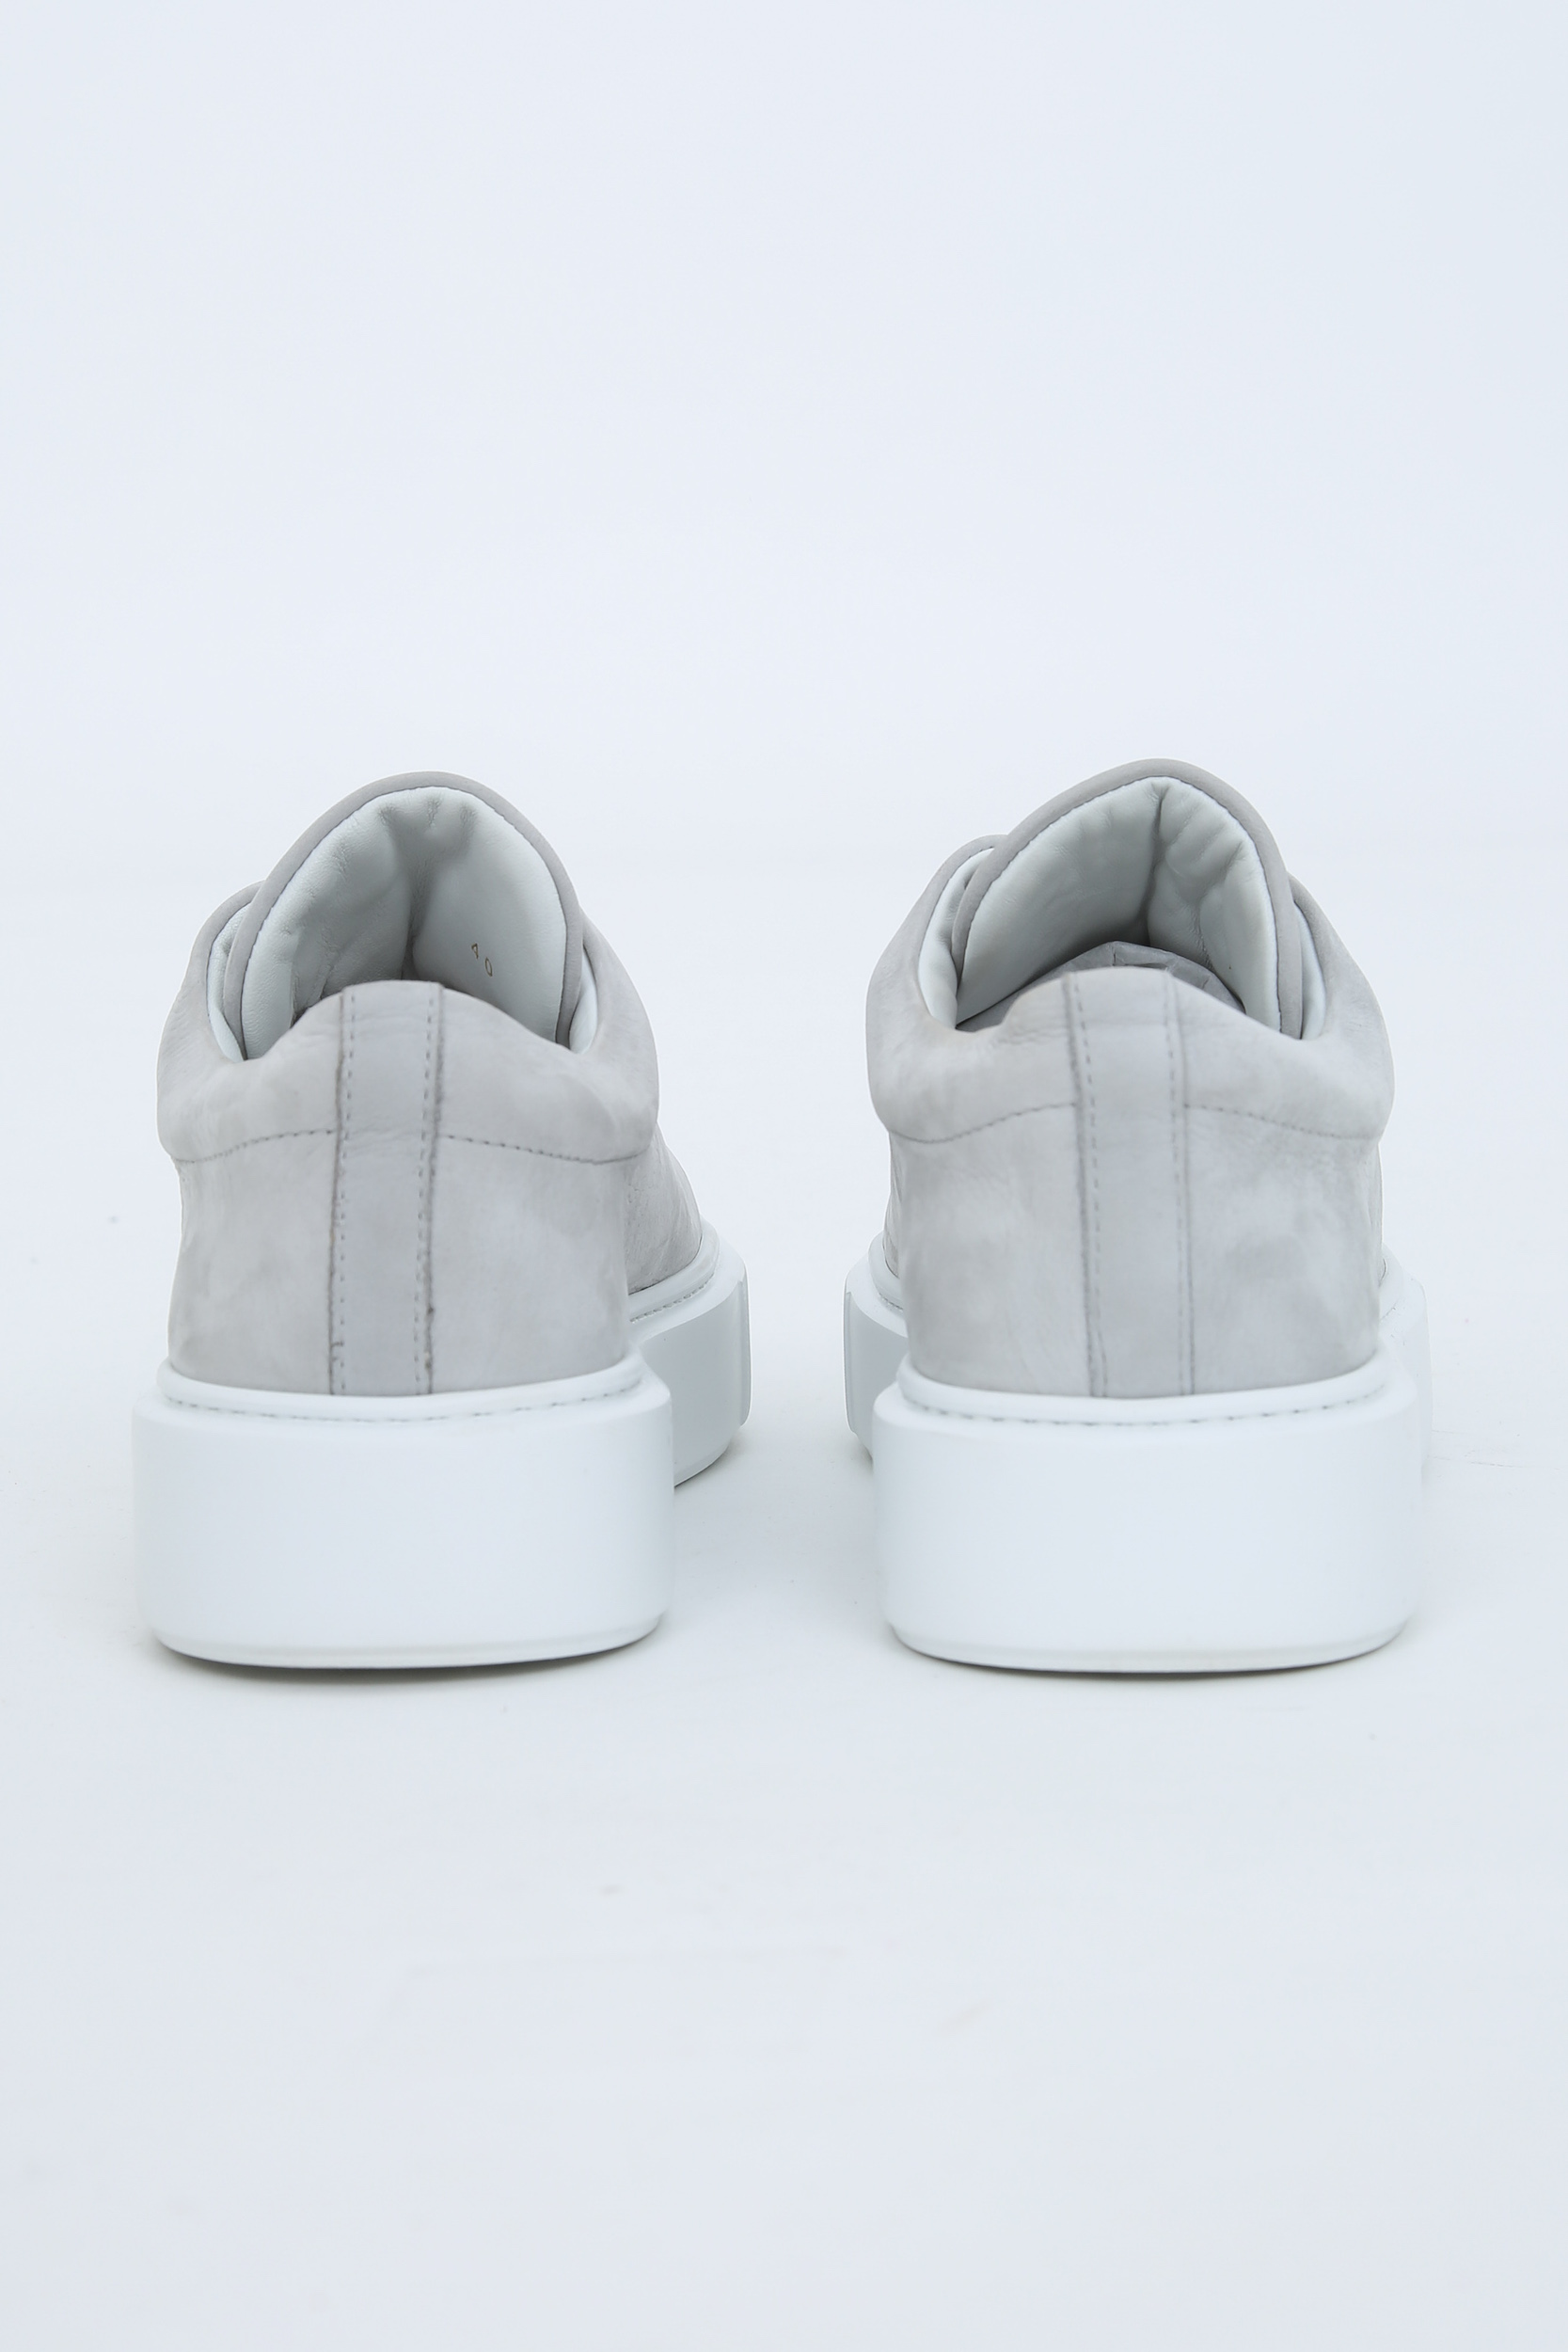 Sneaker CPH407 Nabuc Light Grey